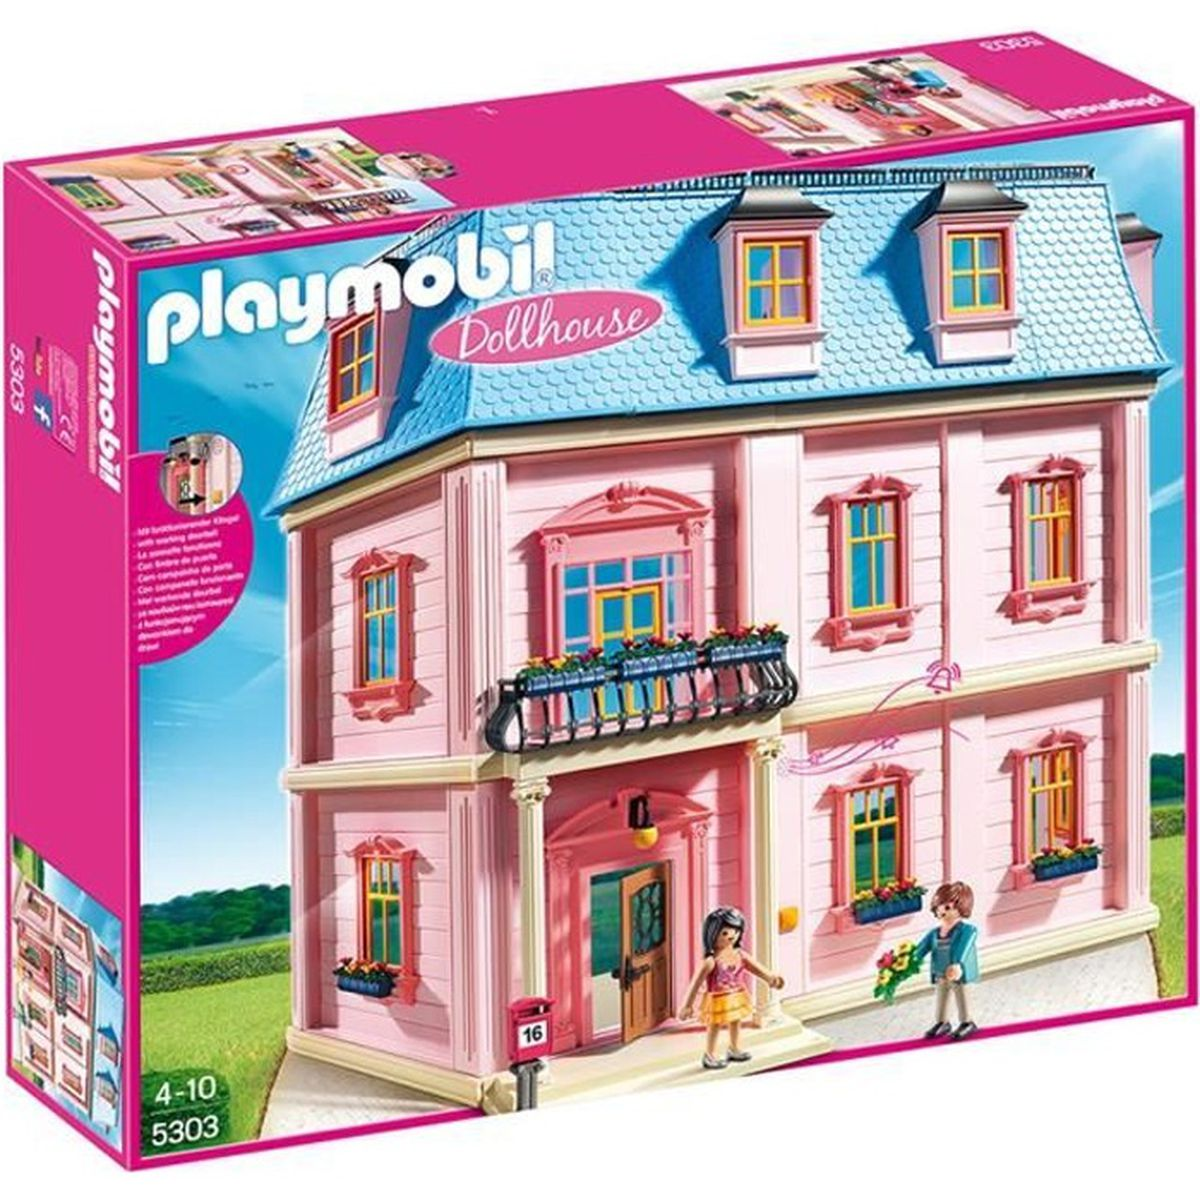 playmobil la grande maison achat vente jeux et jouets. Black Bedroom Furniture Sets. Home Design Ideas